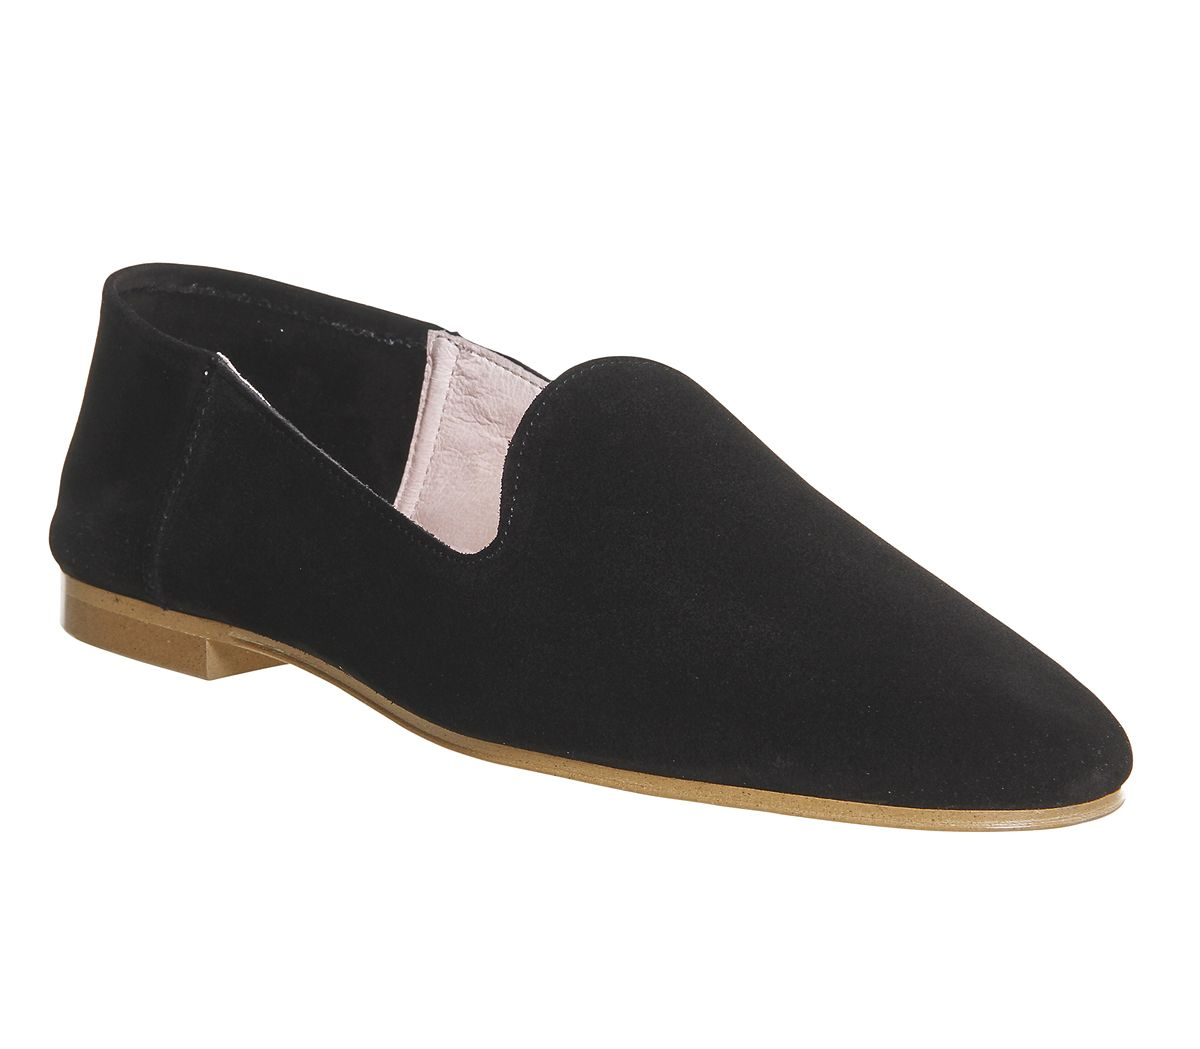 8d2abca0b6c Dakota Slip On Loafers | Shoes | Suede flats, Black suede, Loafers